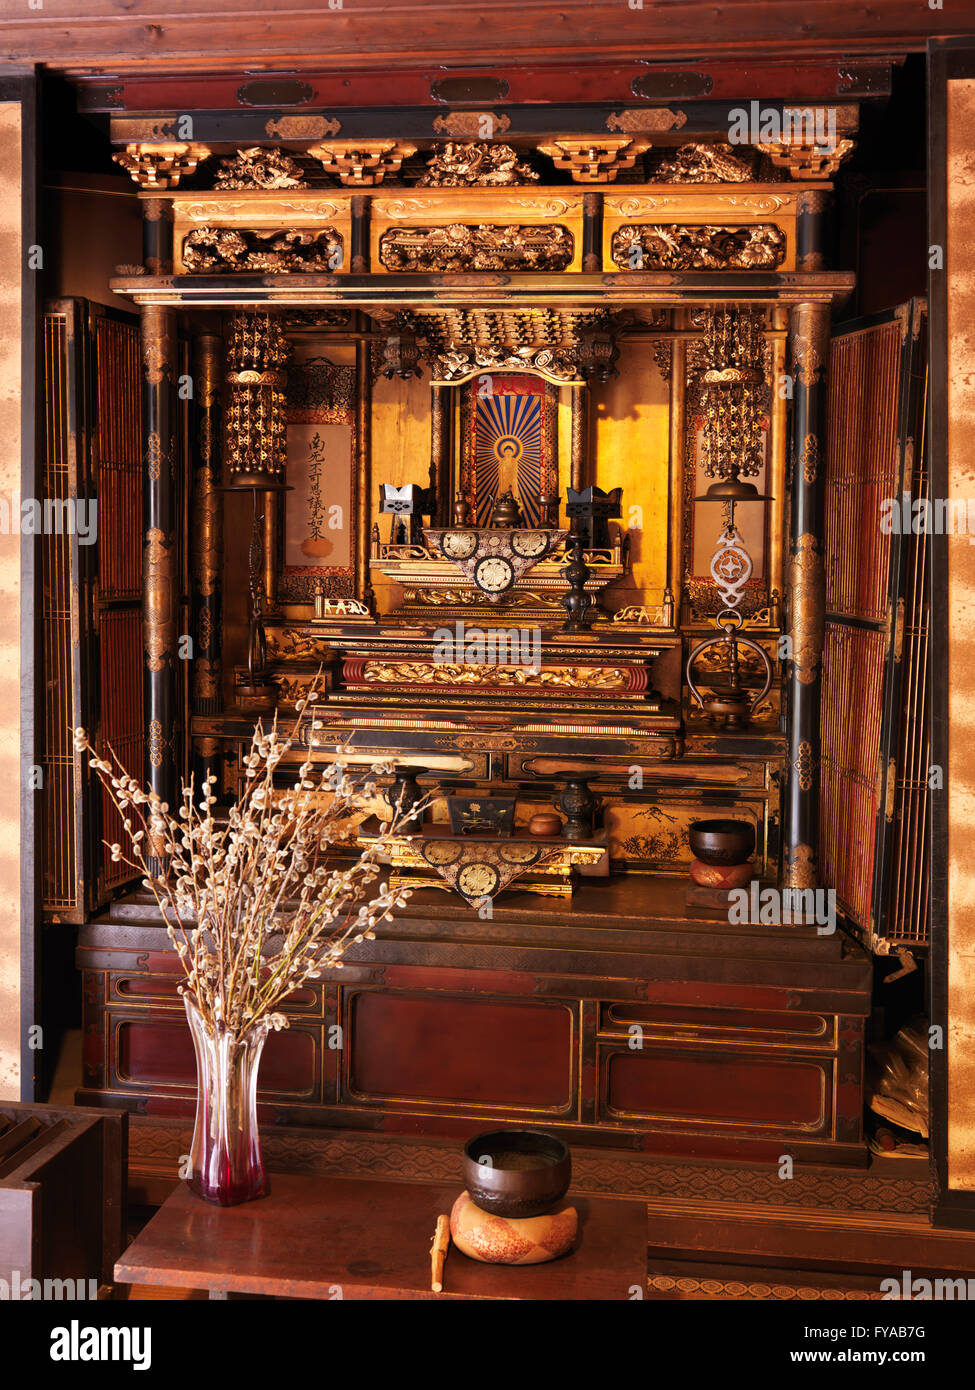 Butsudan, Japanese Buddhist altar in a historic Japanese house ...